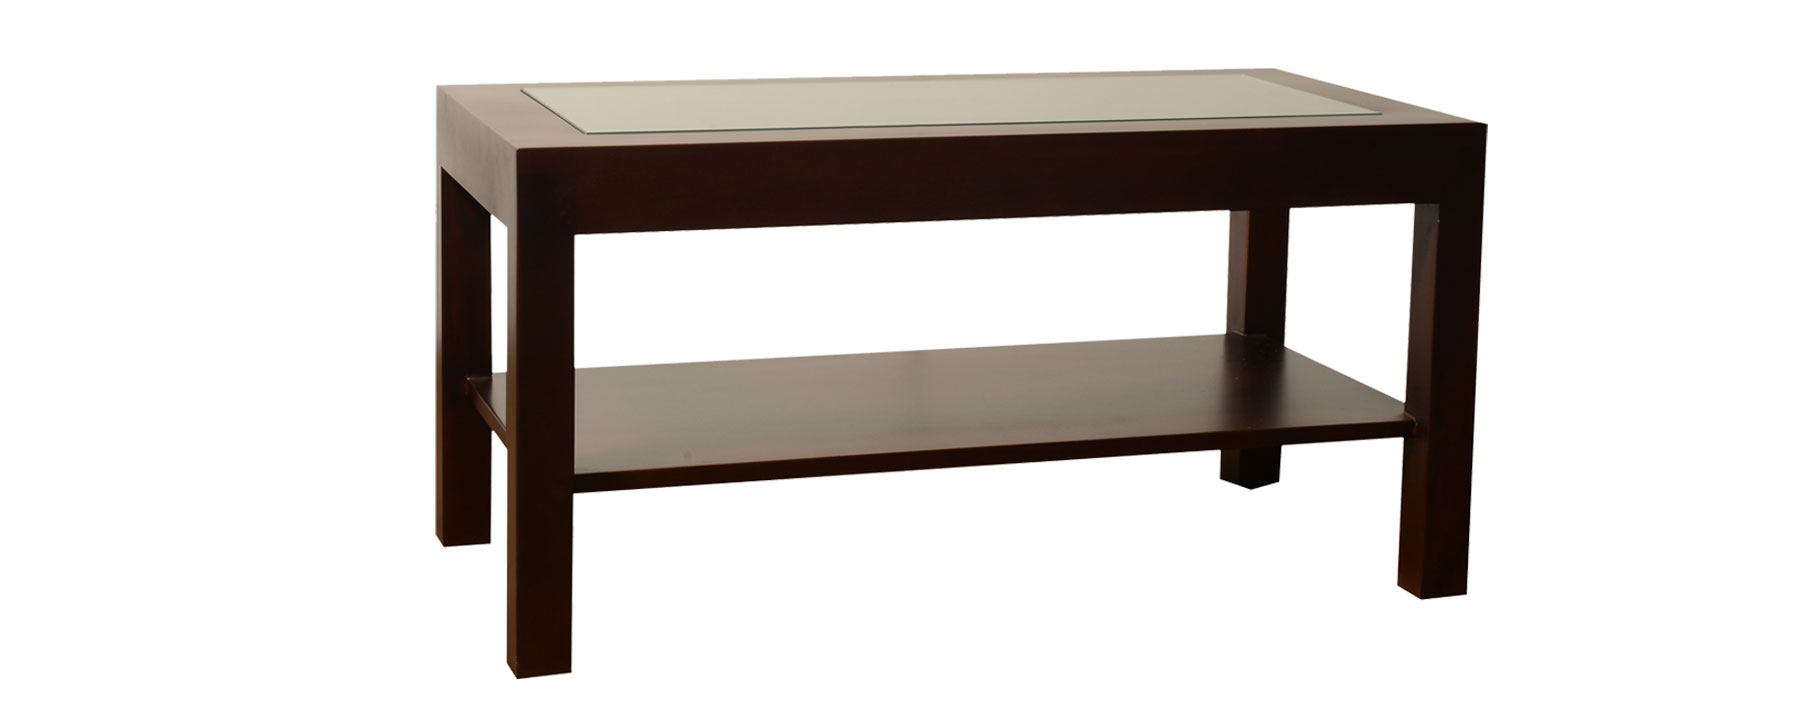 5 doubts you should clarify about coffee table designs in for Dining room designs in sri lanka